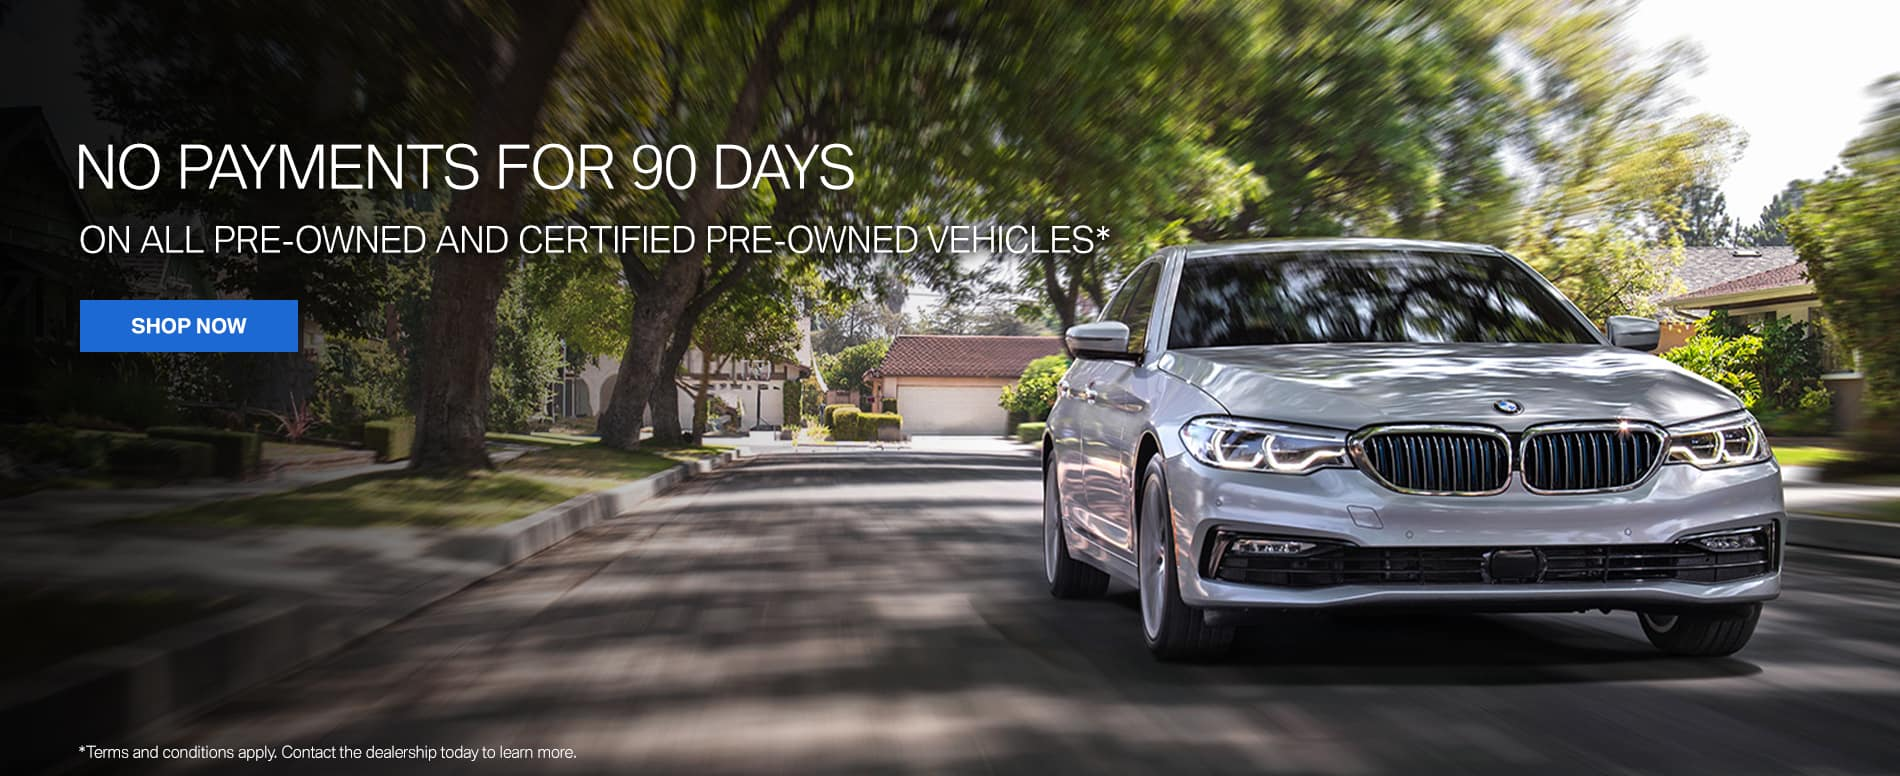 Tulley BMW Manchester 90 Days to Payment Offer